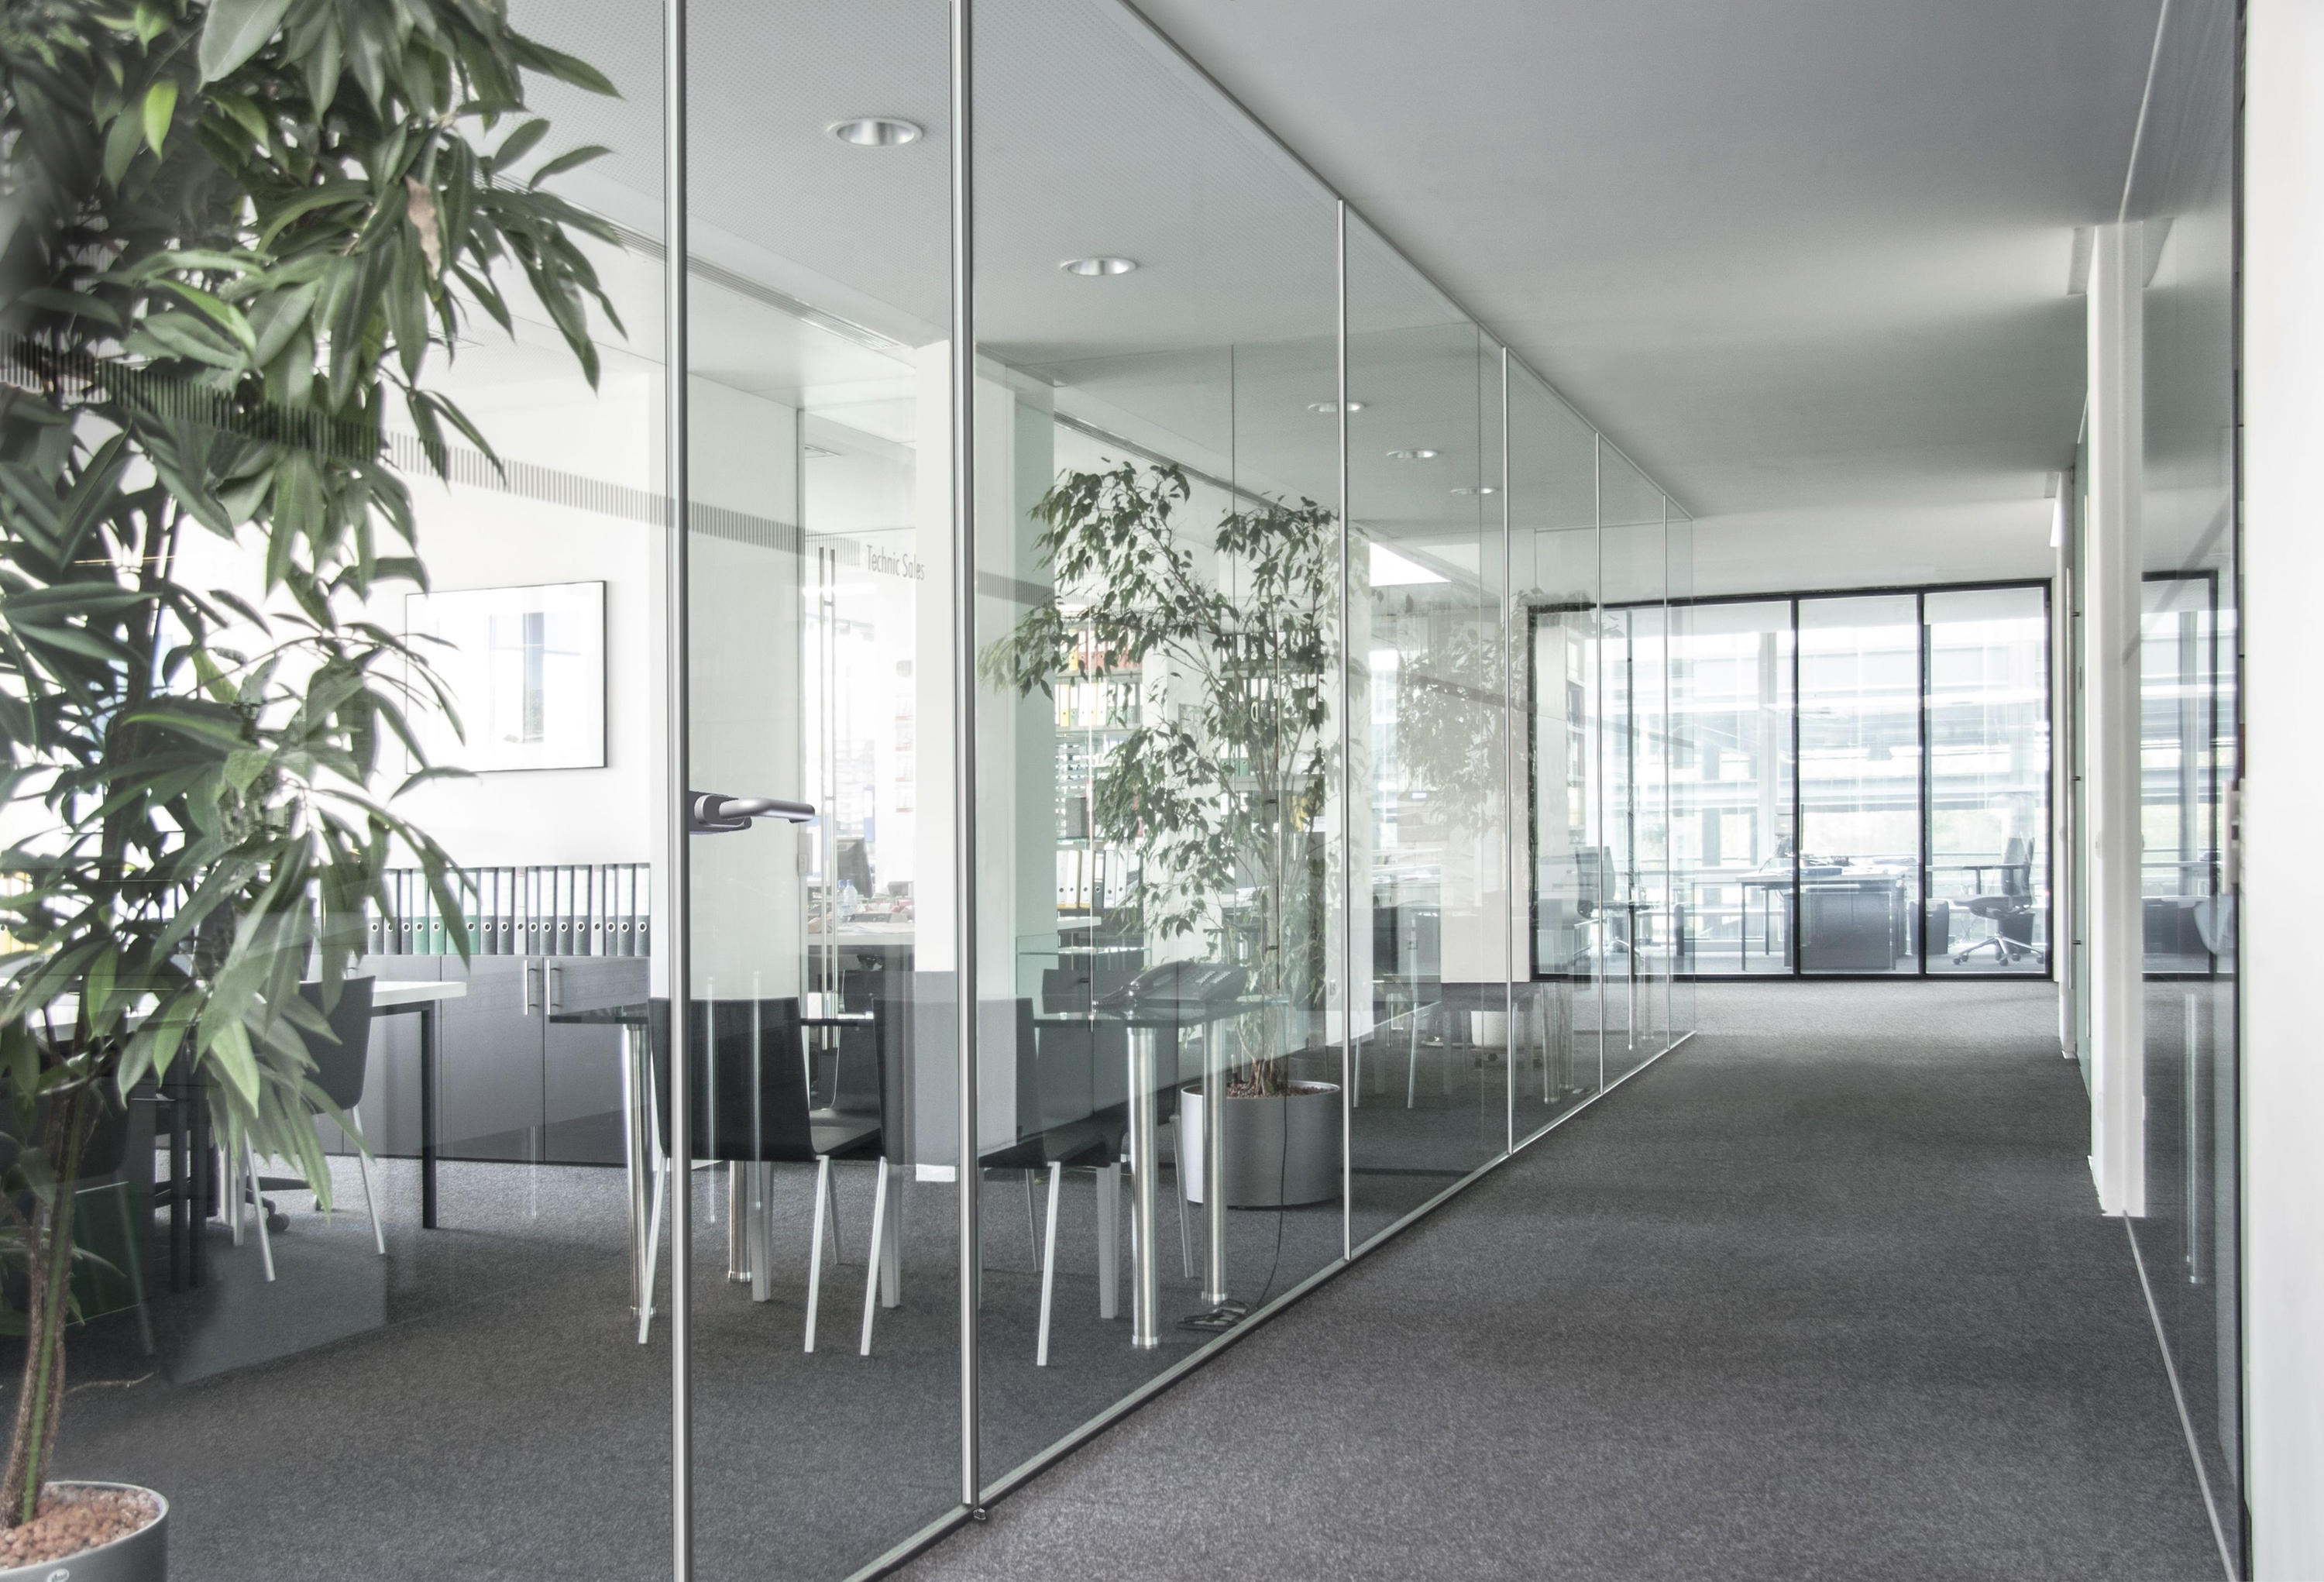 Gm martition® light wall partition systems from glas marte